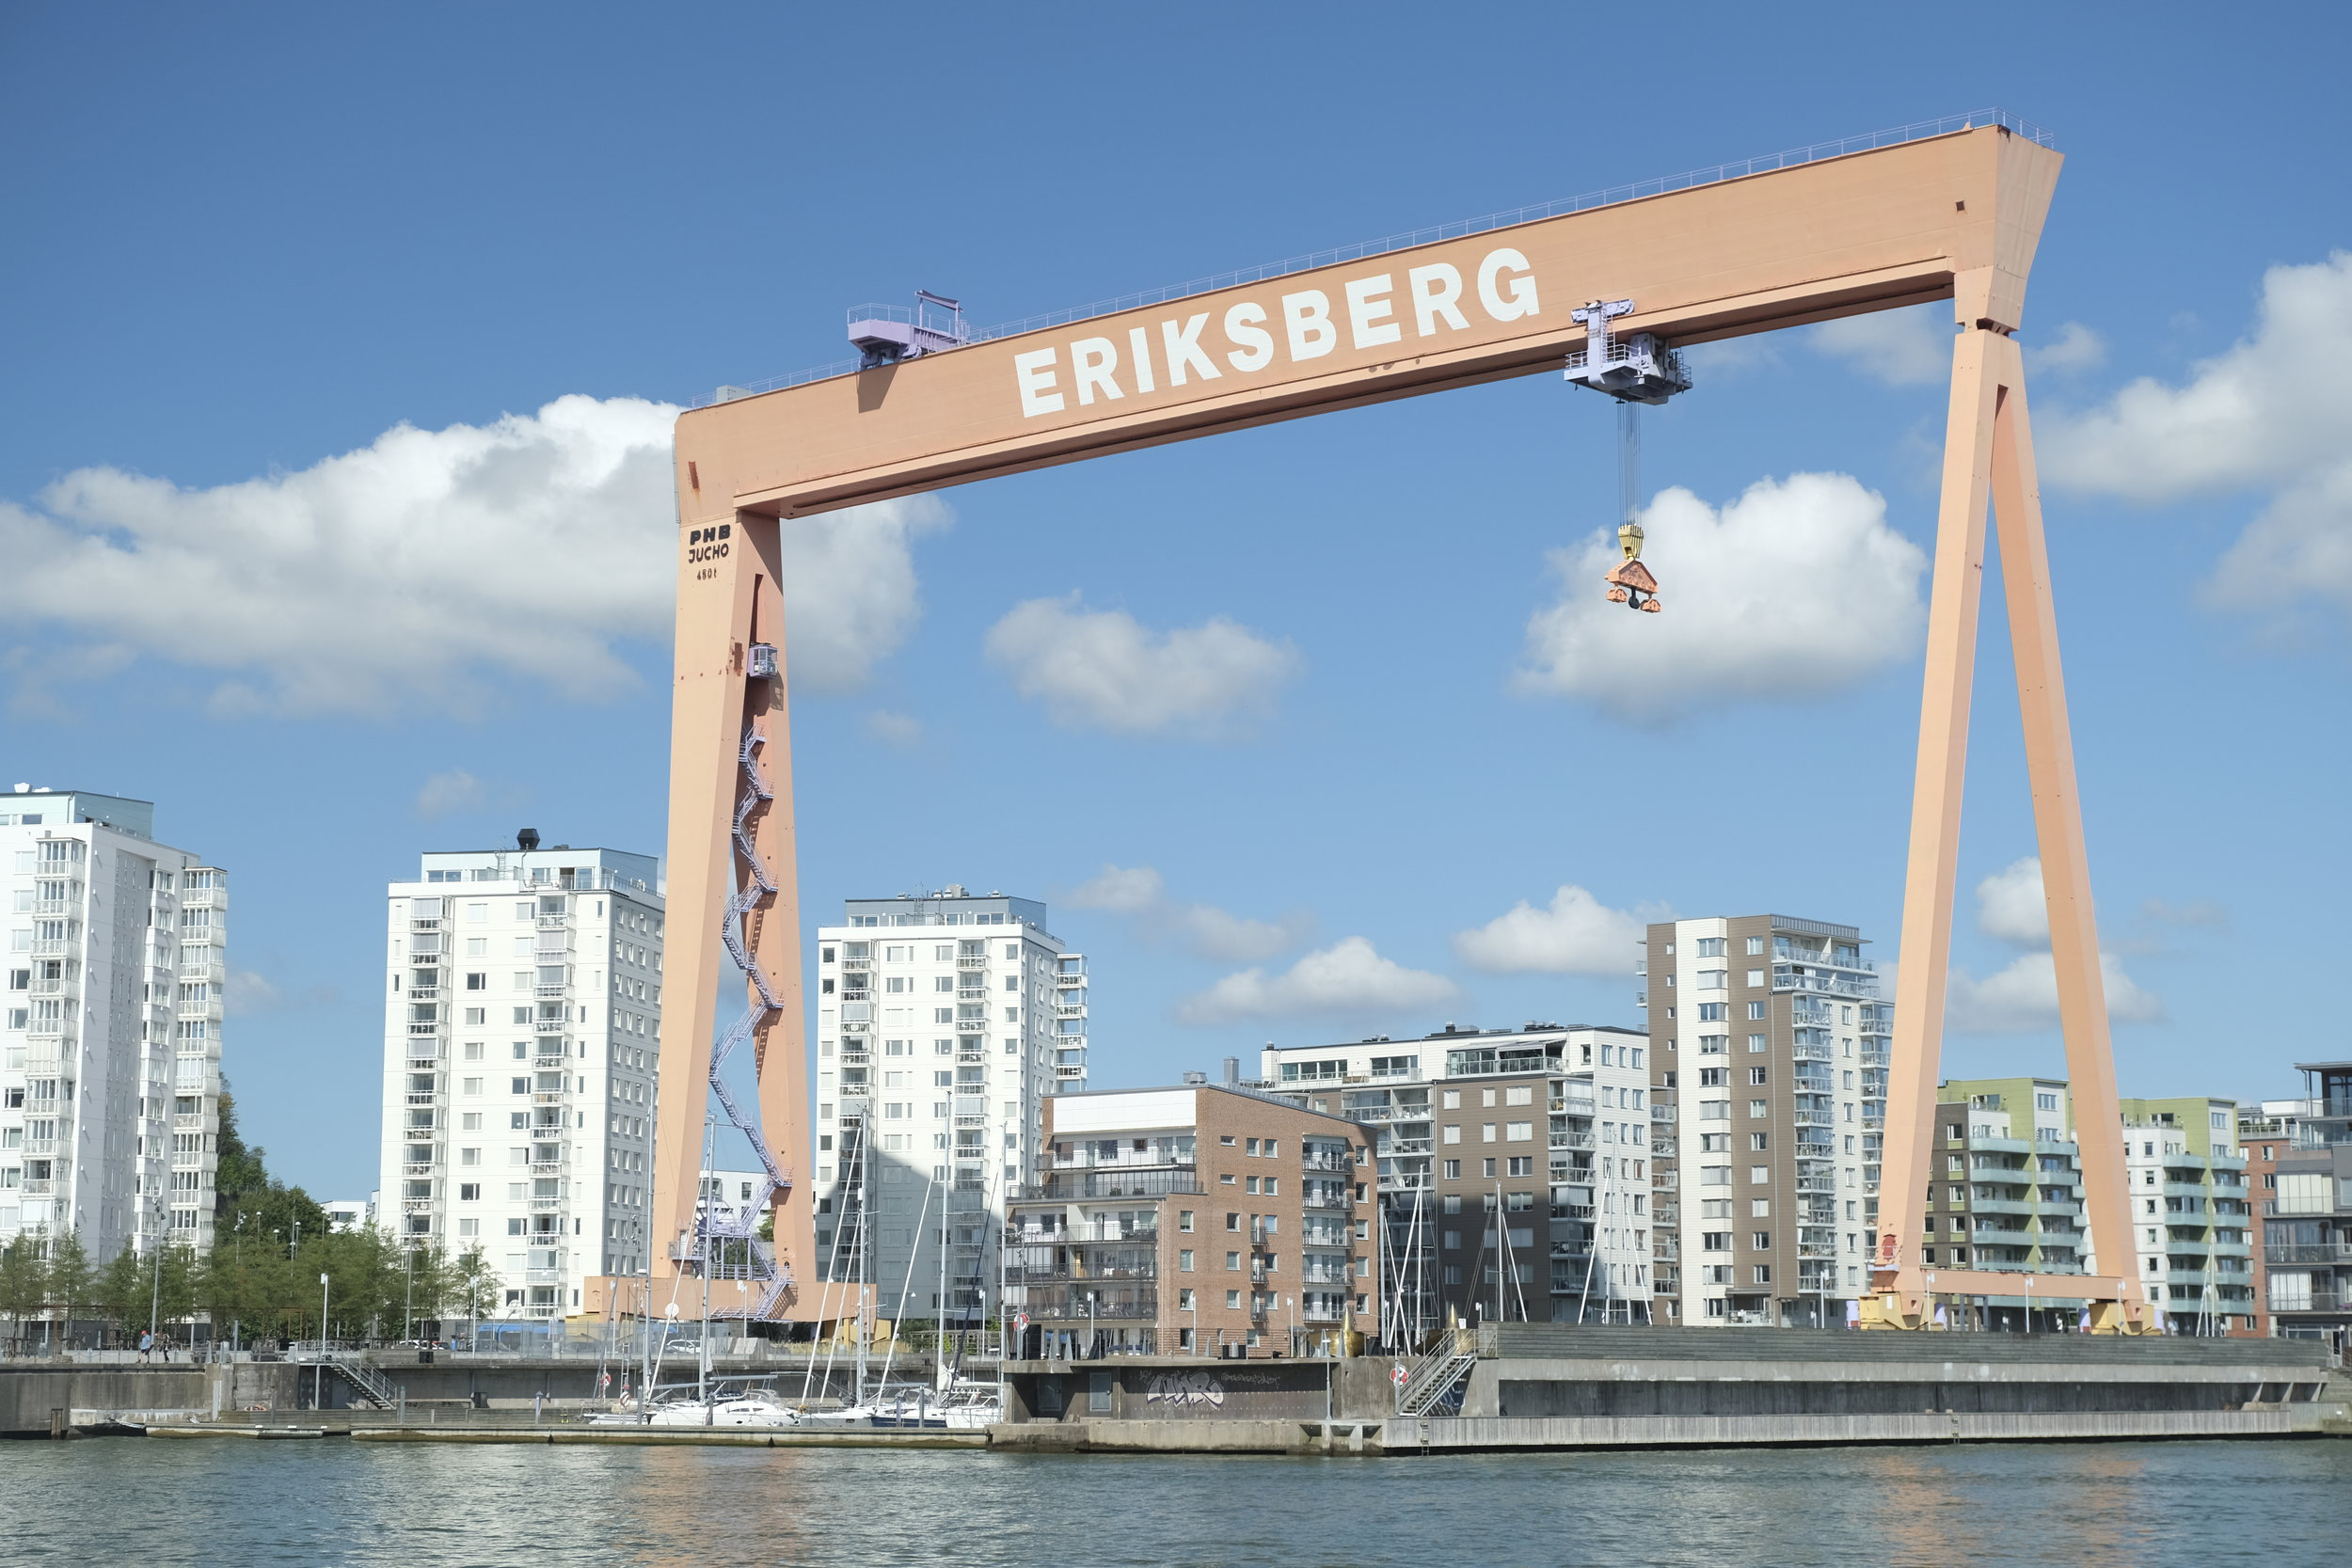 Gothenburg dry dock welcomes you to the city